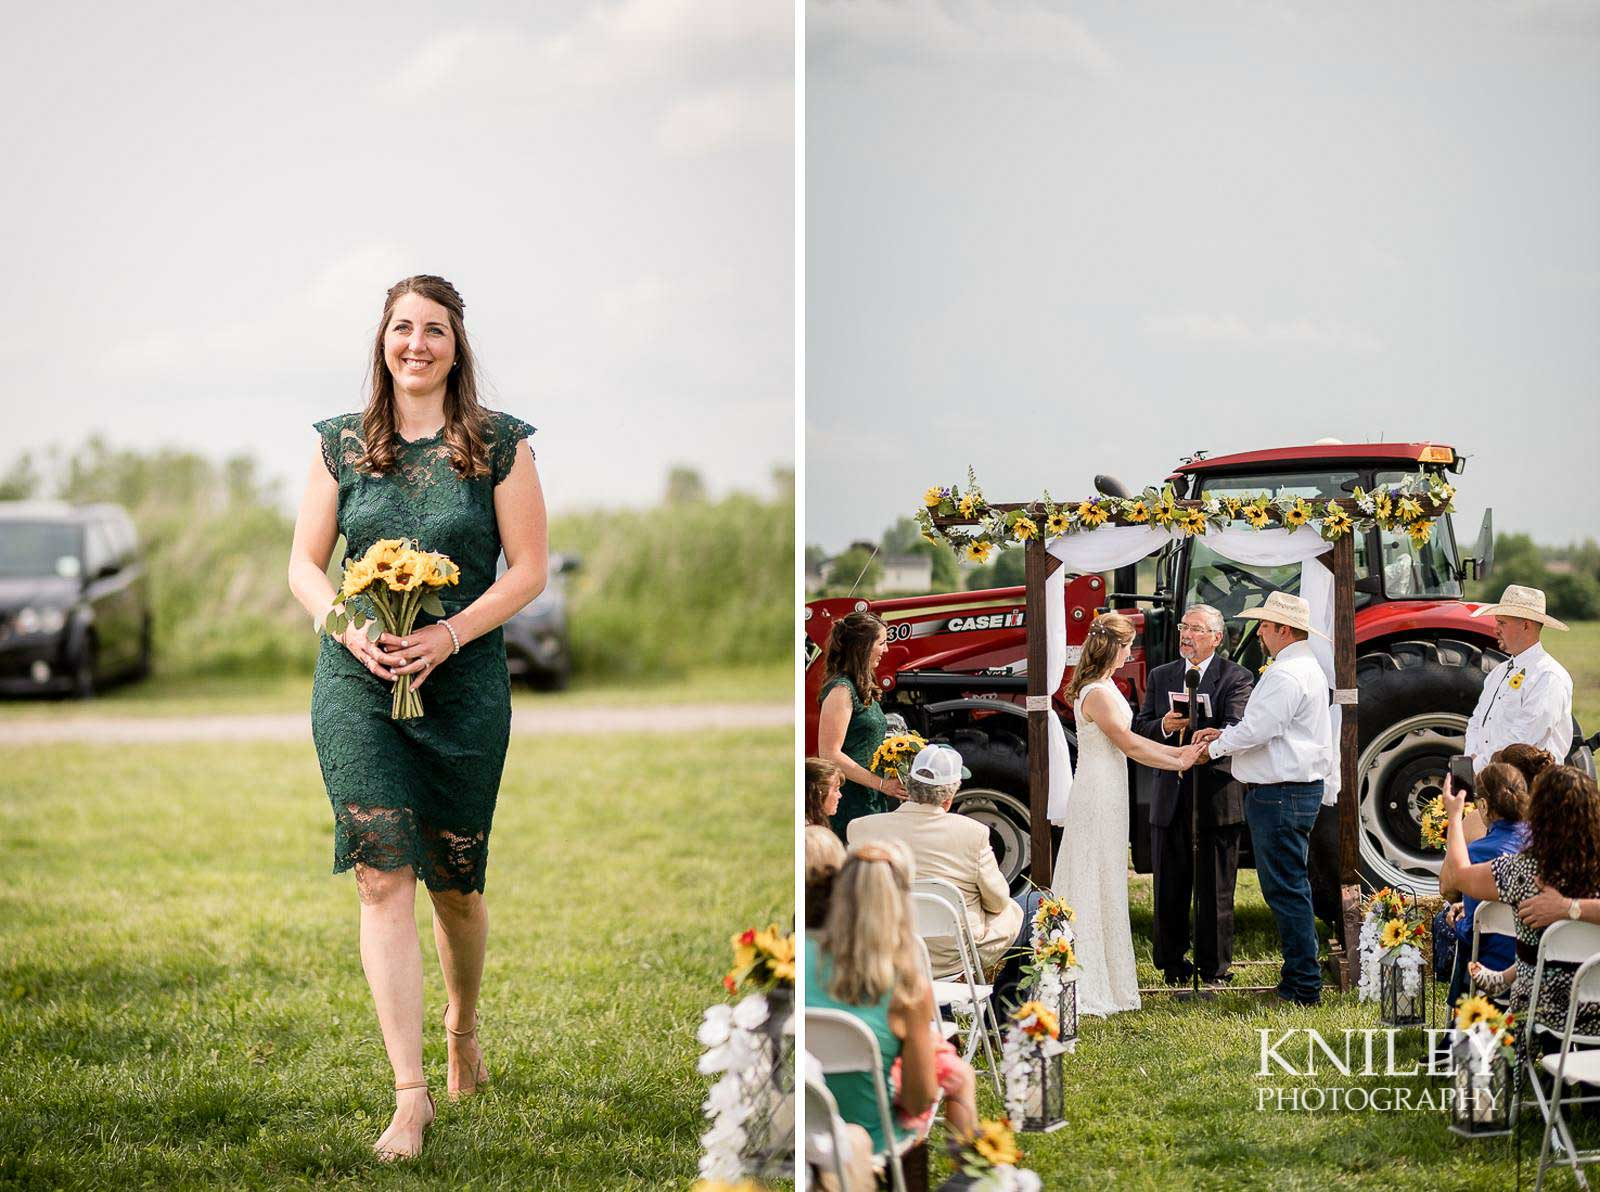 29-Western-New-York-farm-wedding-Kniley-Photography.jpg